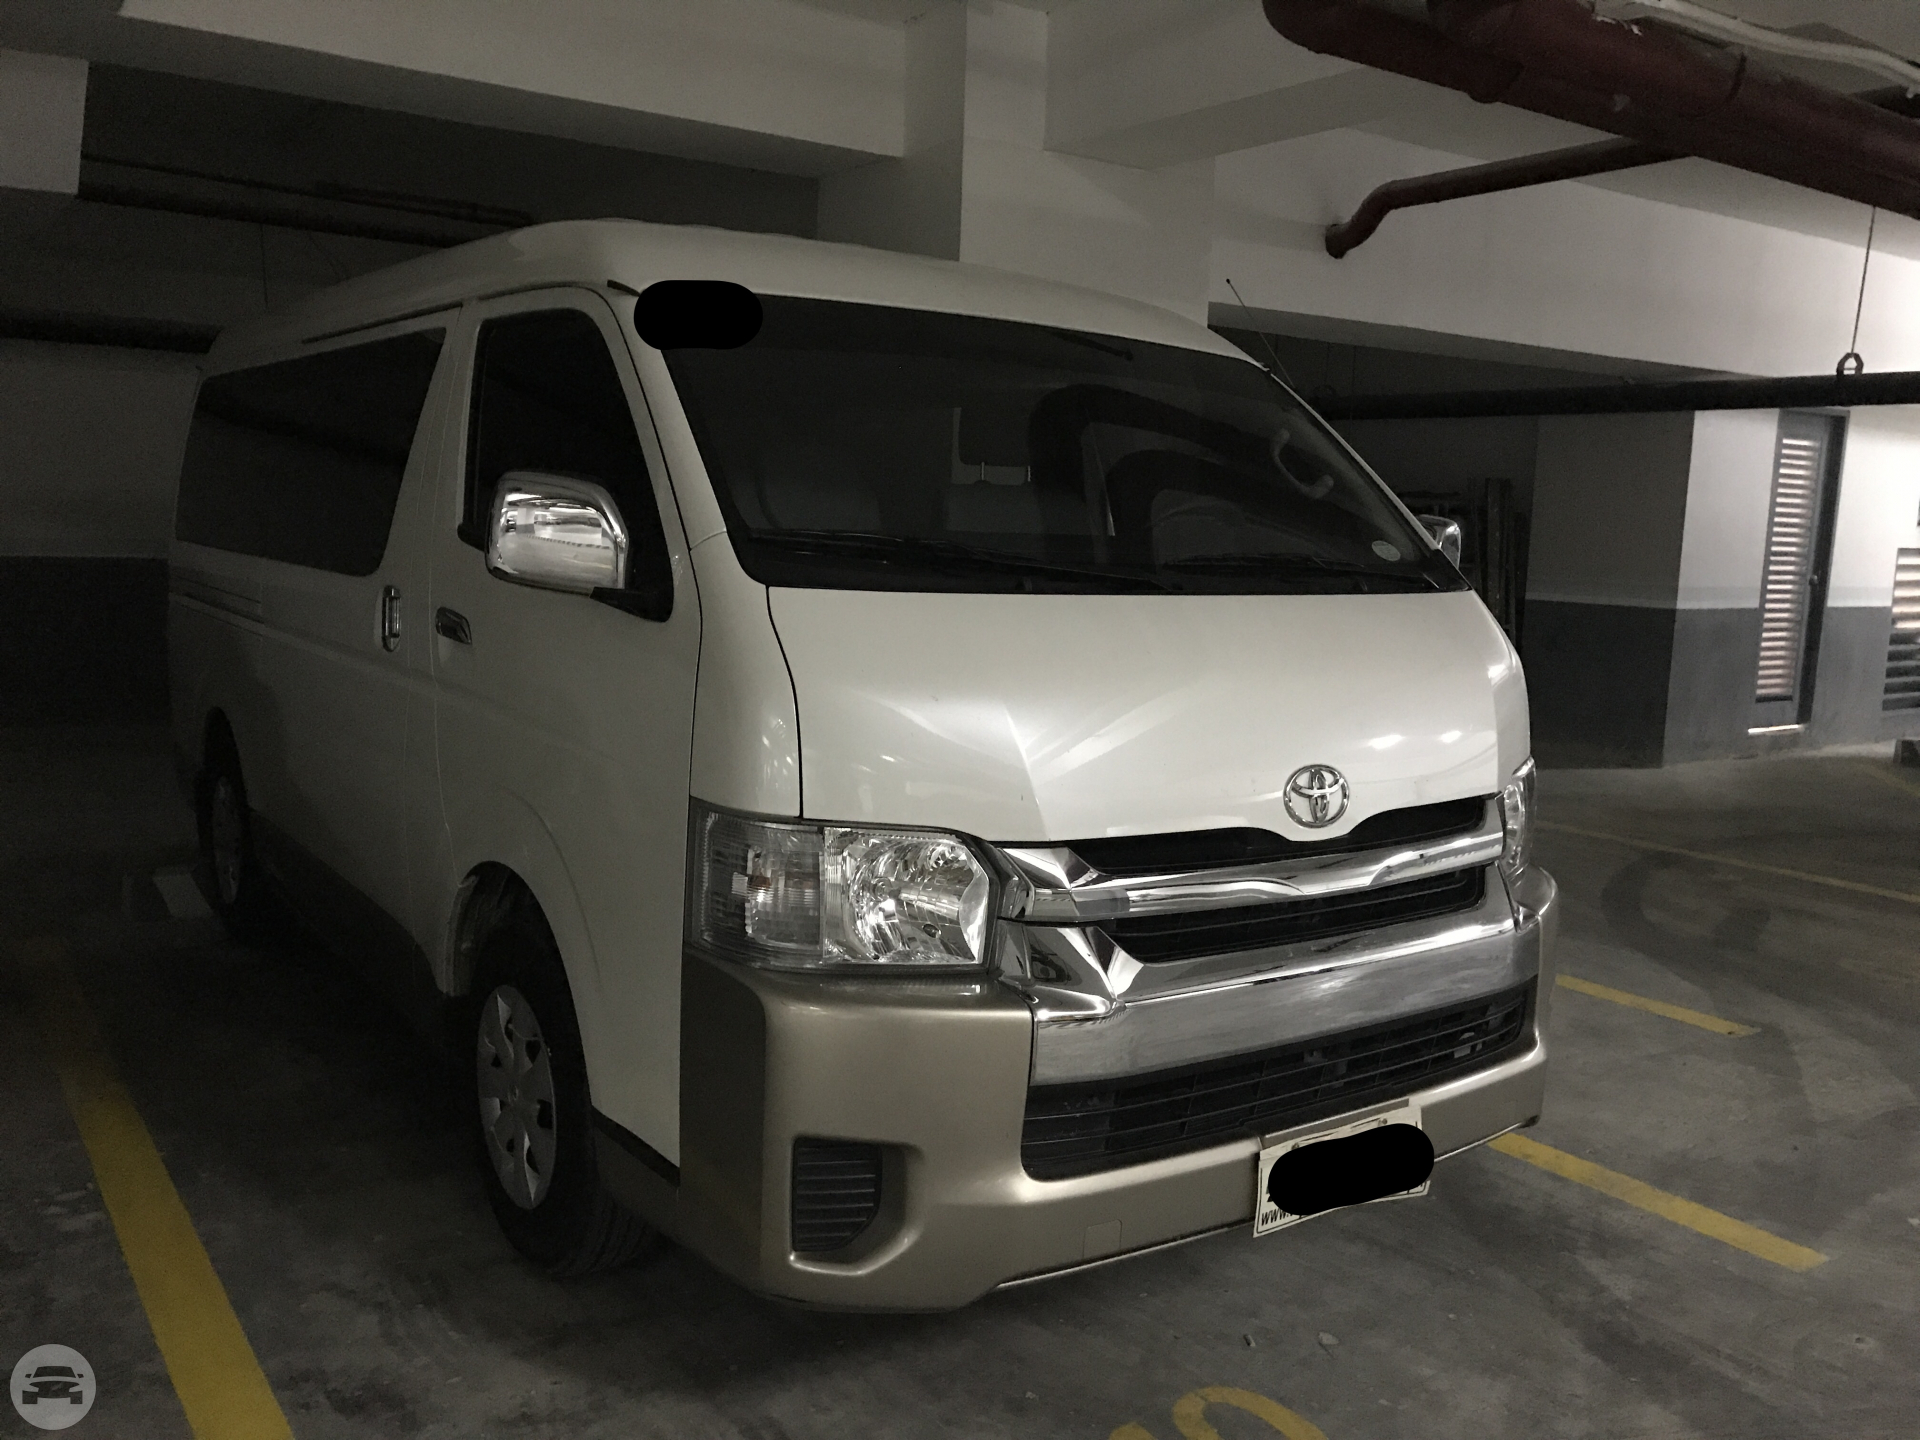 Toyota GL Grandia Van  / Makati, Metro Manila   / Hourly (City Tour) ₱900.00  / Airport Transfer ₱3,500.00  / Daily ₱6,000.00